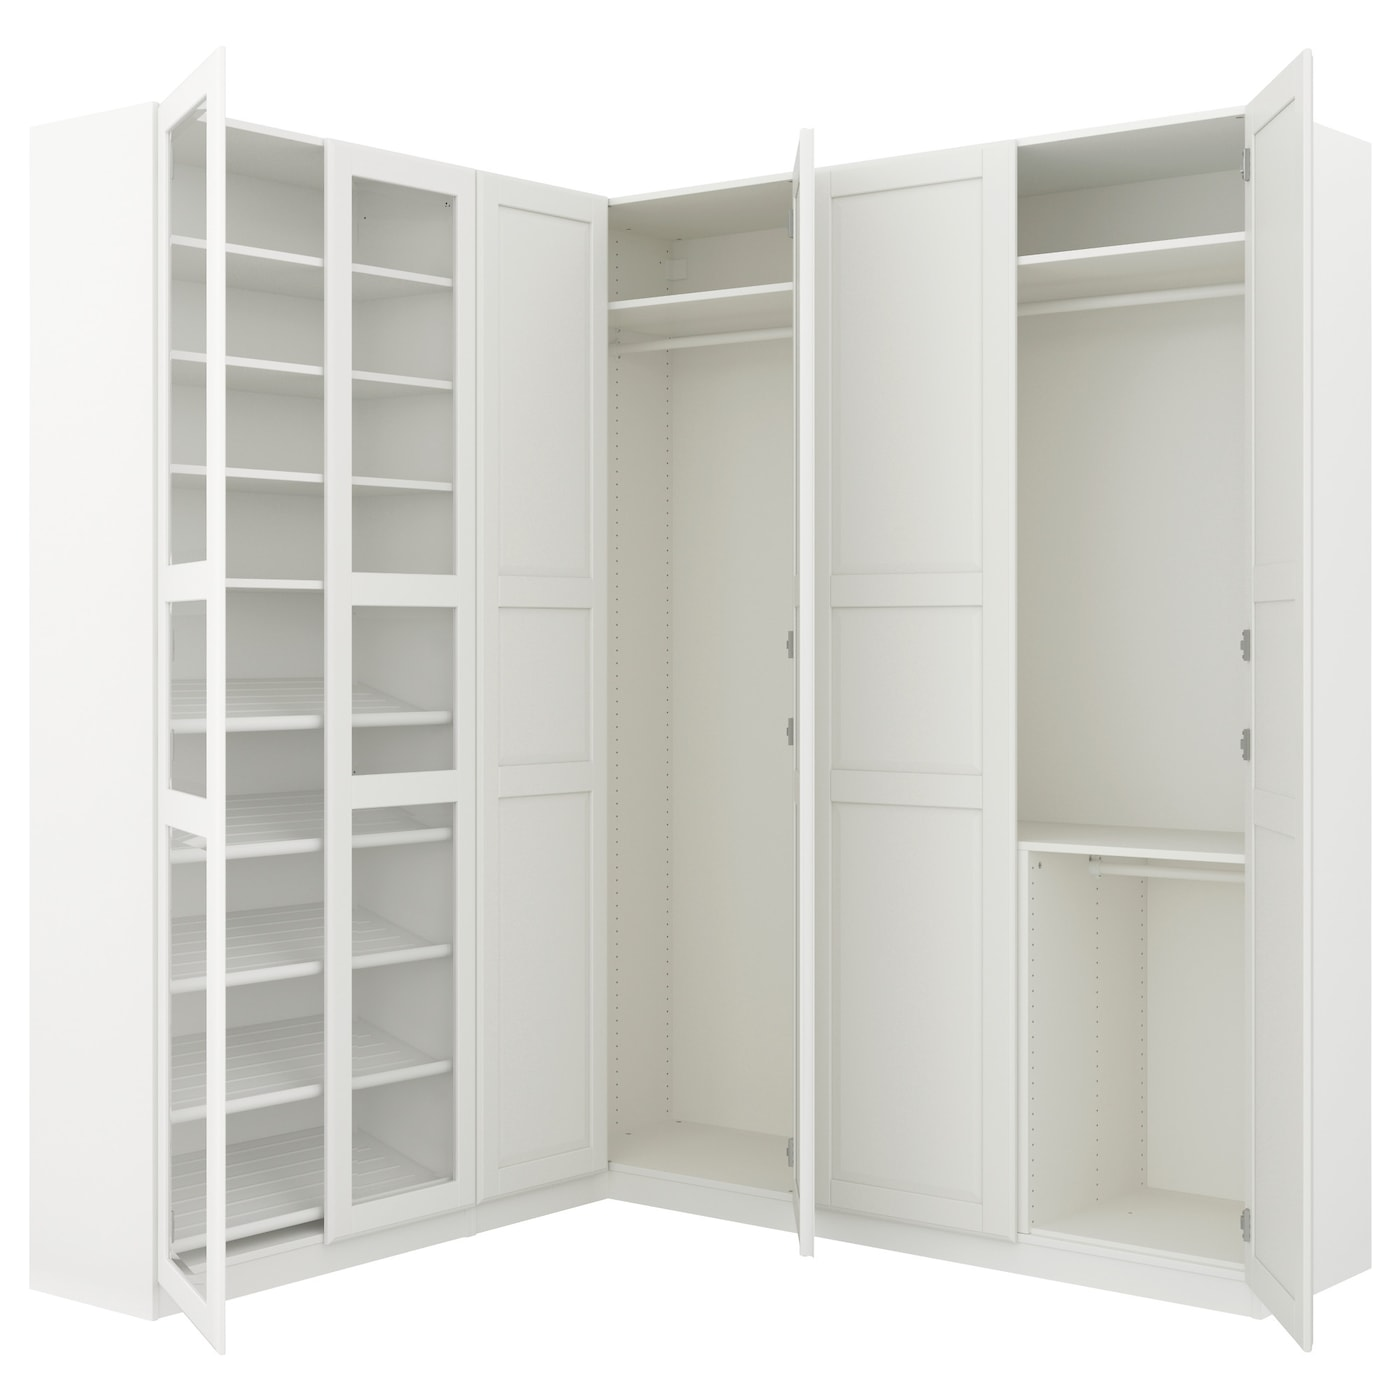 pax corner wardrobe white tyssedal tyssedal glass 210. Black Bedroom Furniture Sets. Home Design Ideas